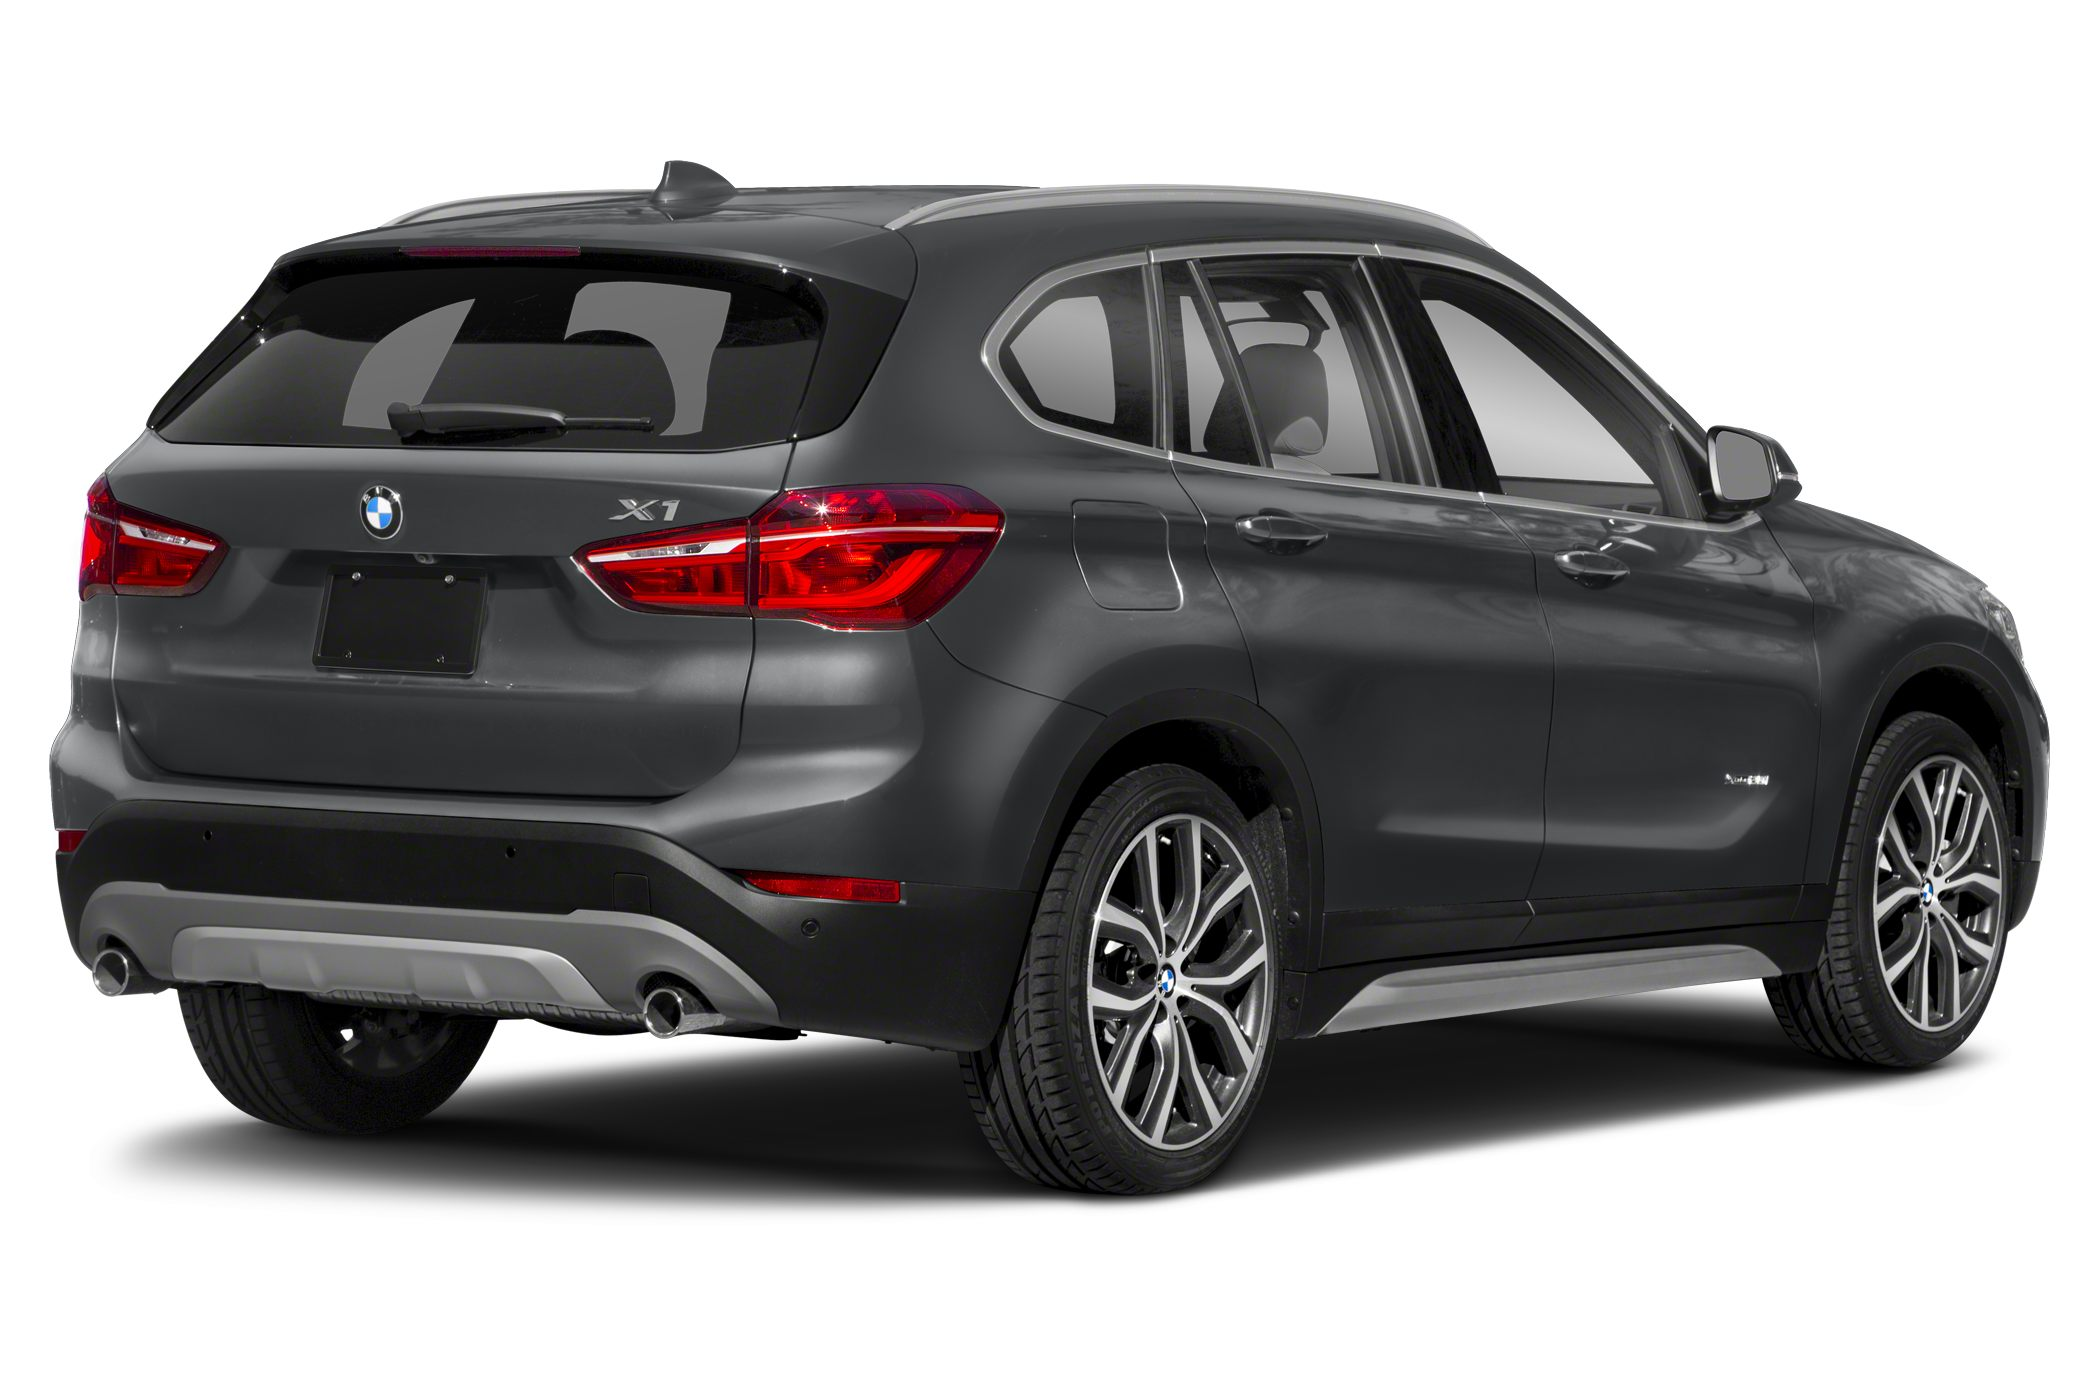 2018 BMW X1 Pictures & Photos - CarsDirect